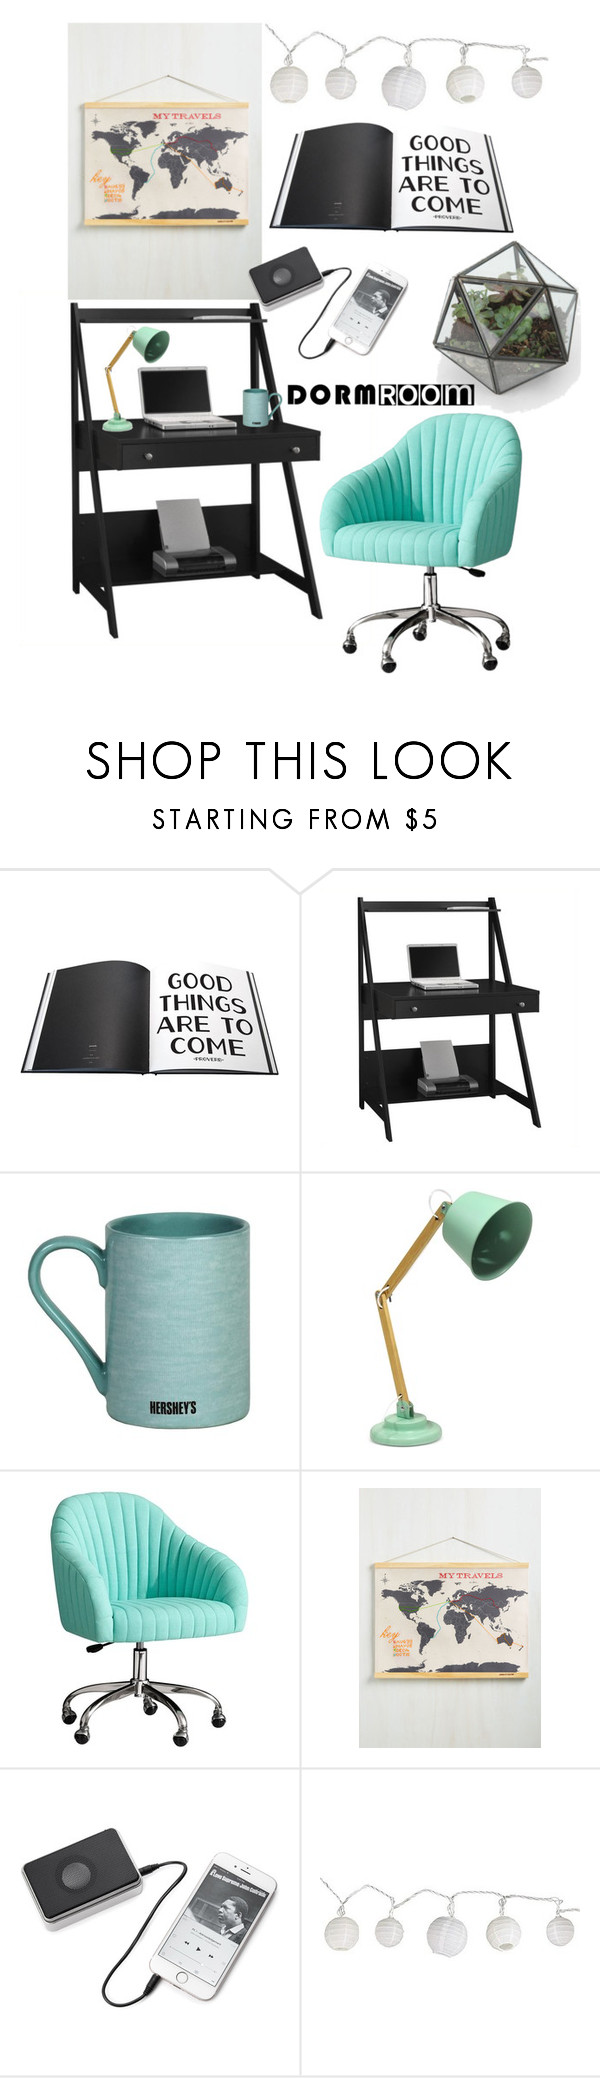 Dorm Room Style by shudenbaun on Polyvore featuring interior, interiors, interior design, дом, home decor, interior decorating, Bush Furniture, IdeaNuova, Fitz & Floyd and Luckies Of London